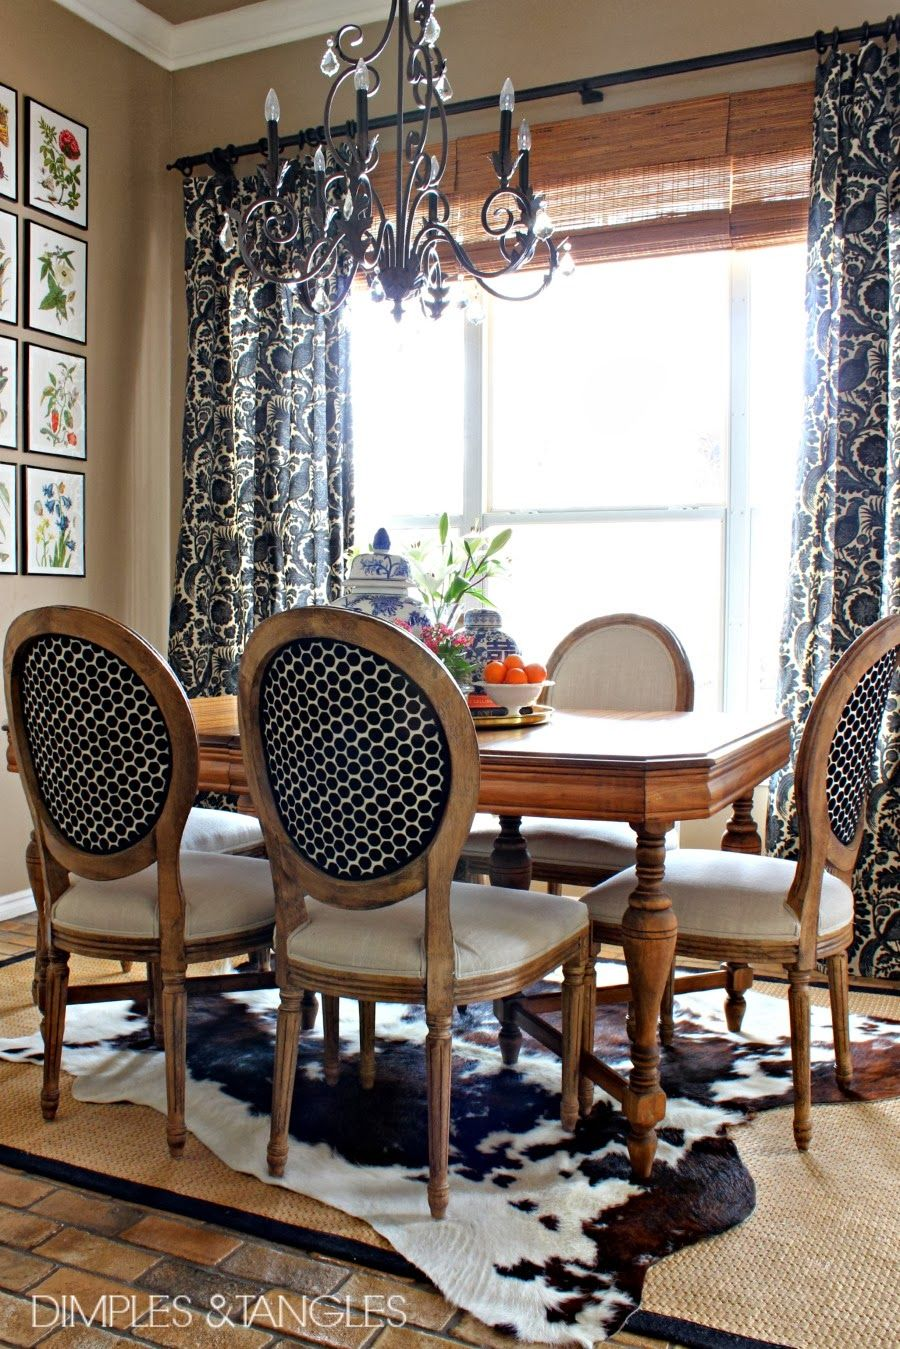 Dimples And Tangles My Thoughts On Cowhide Rugs Cowhide Rug Dining Room Rug Under Dining Table Dining Room Design